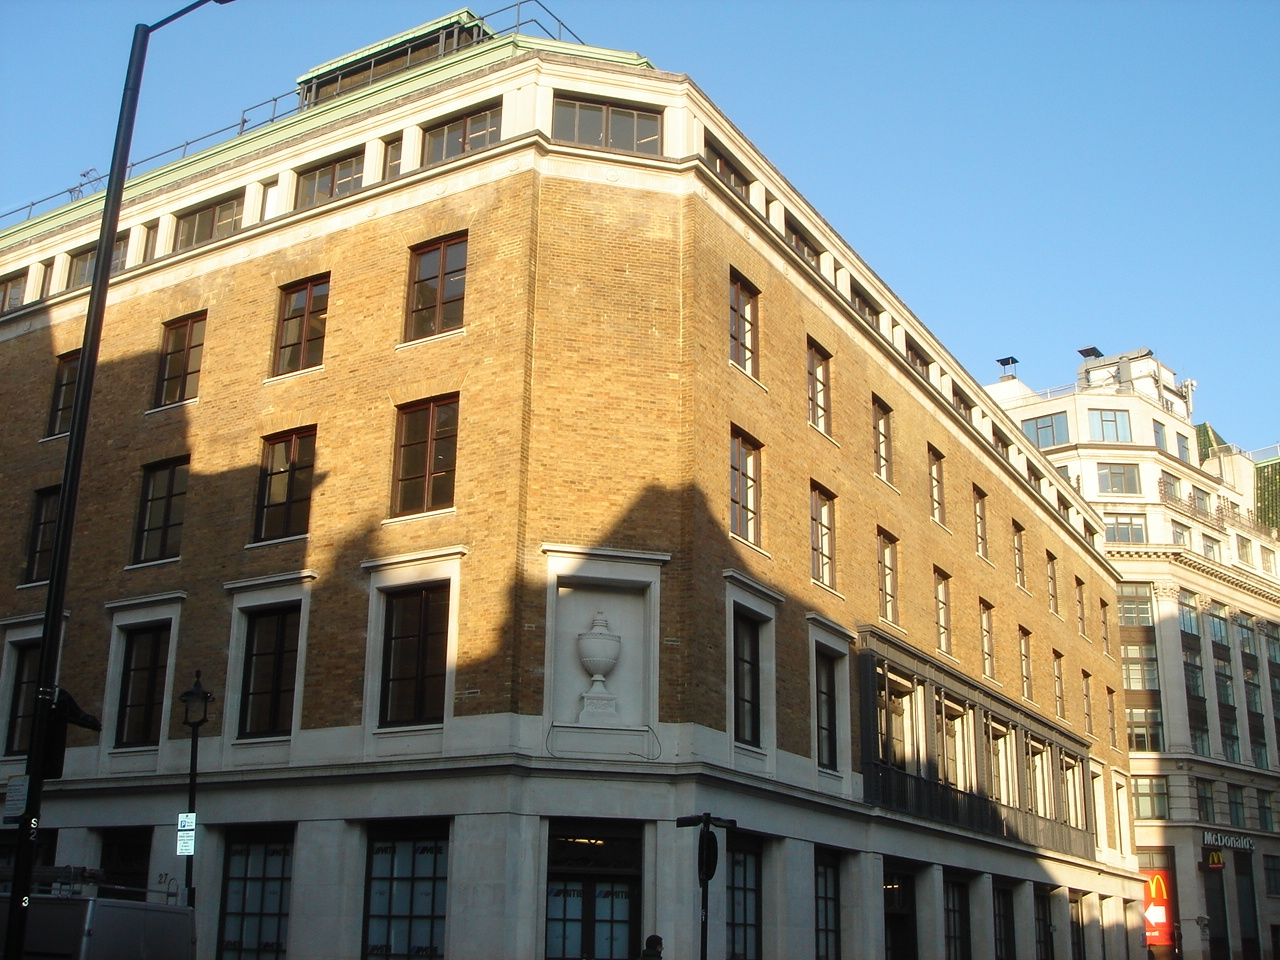 Clareville House, West End, London